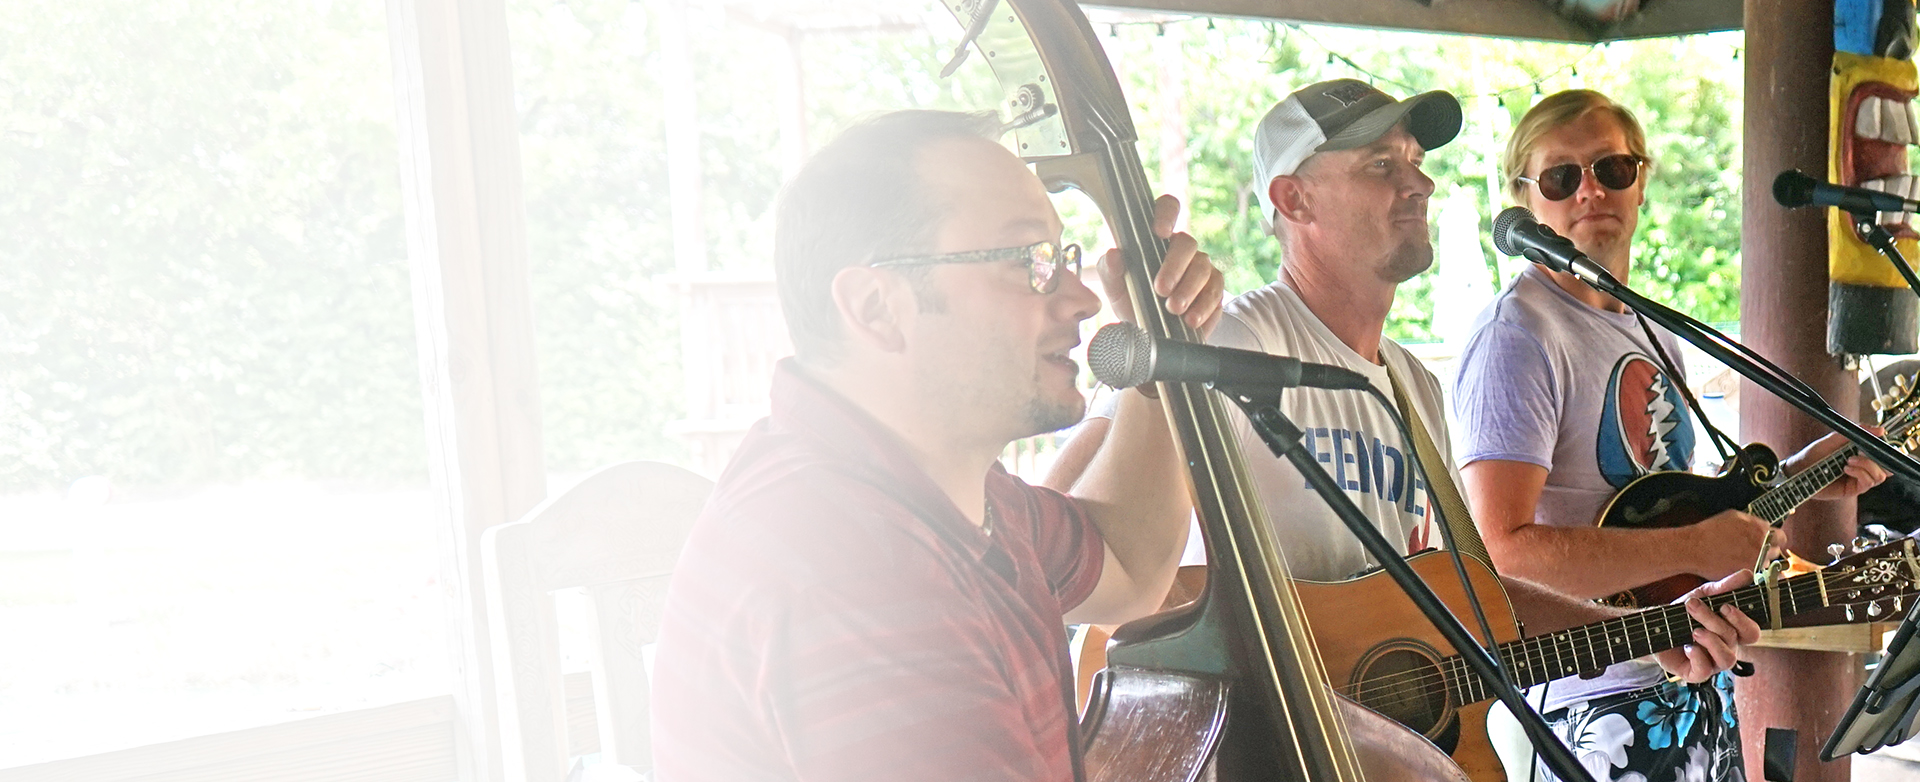 music playing, live entertainment